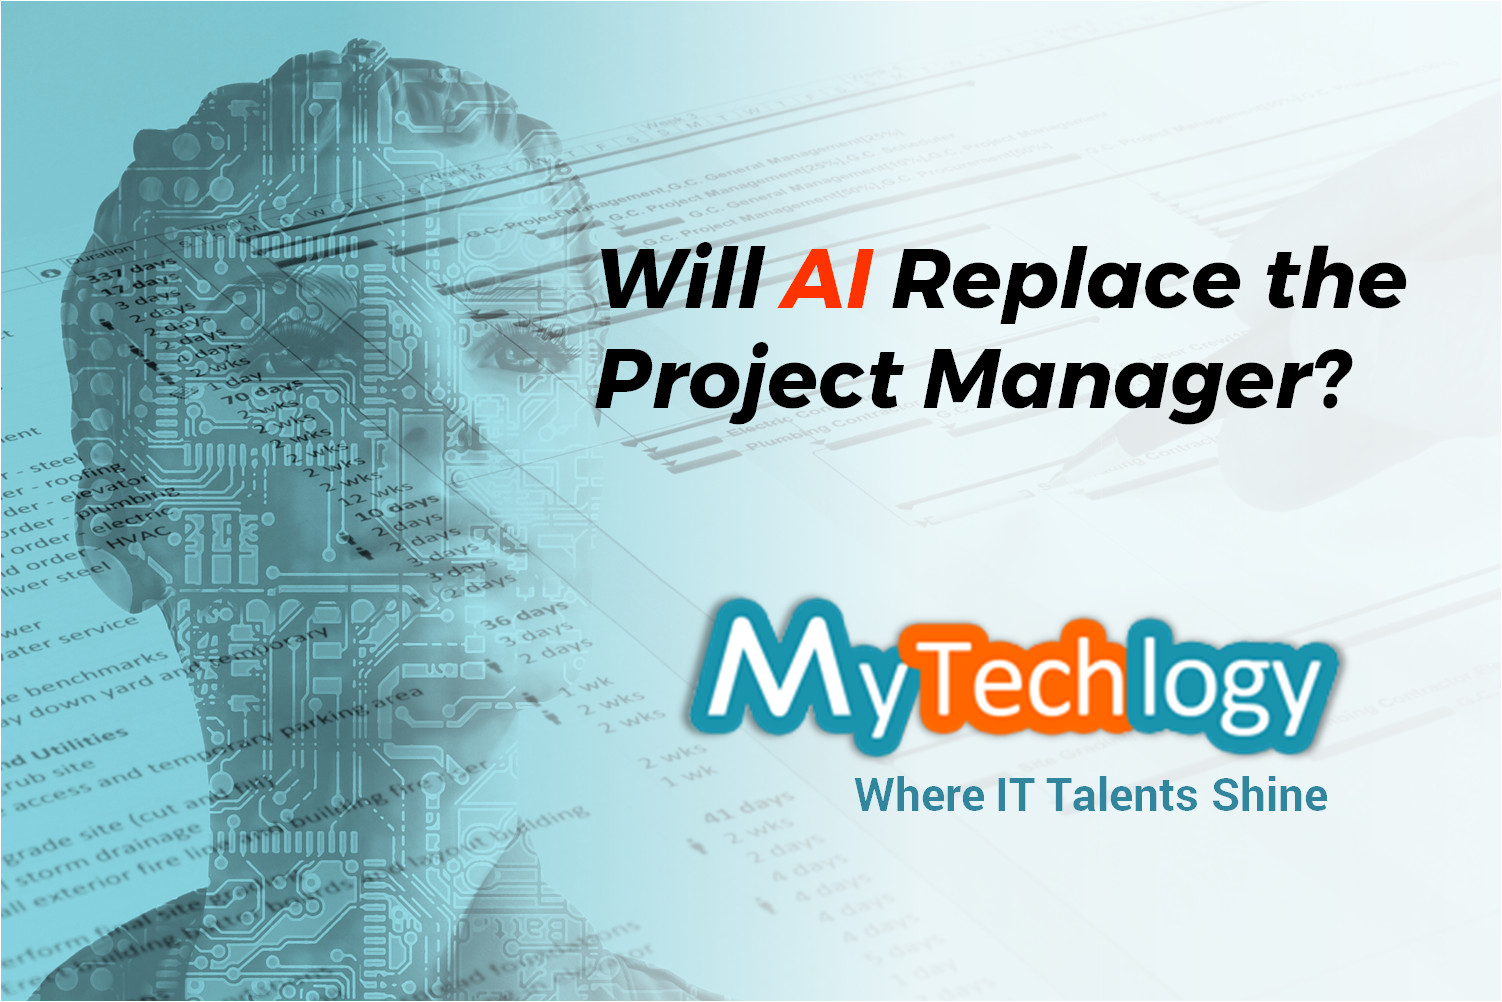 Will Artificial Intelligence replace the Project Manager? - Image 1